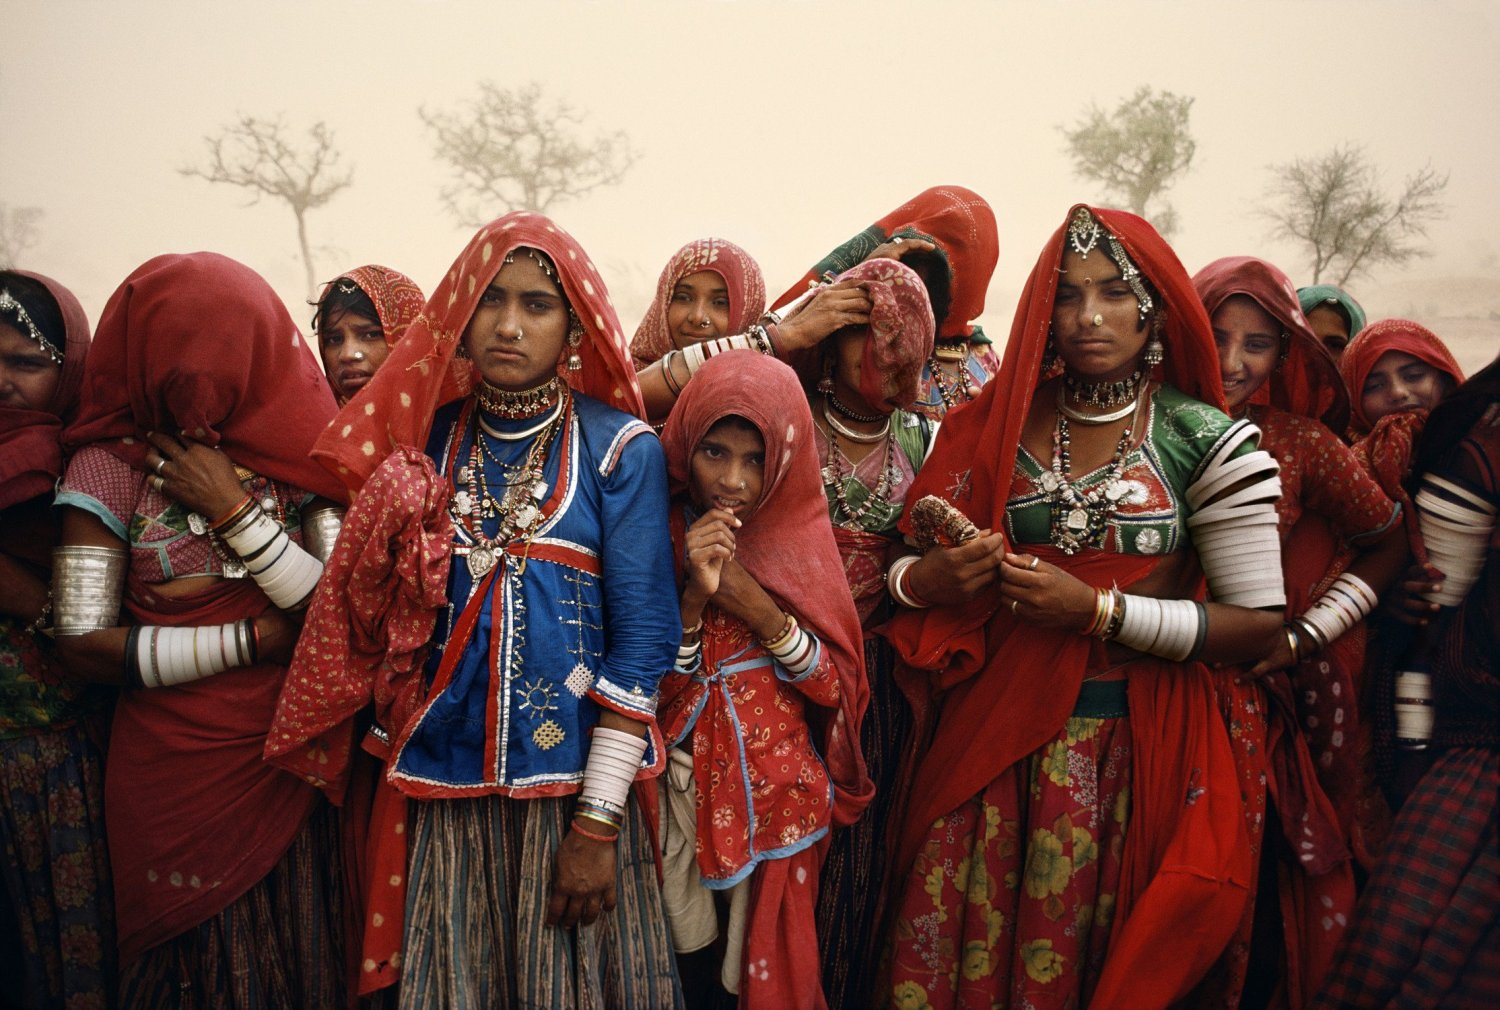 Steve-McCurry-Cluster-of-women-during-a-dust-storm-Rajasthan-India-1983.jpg